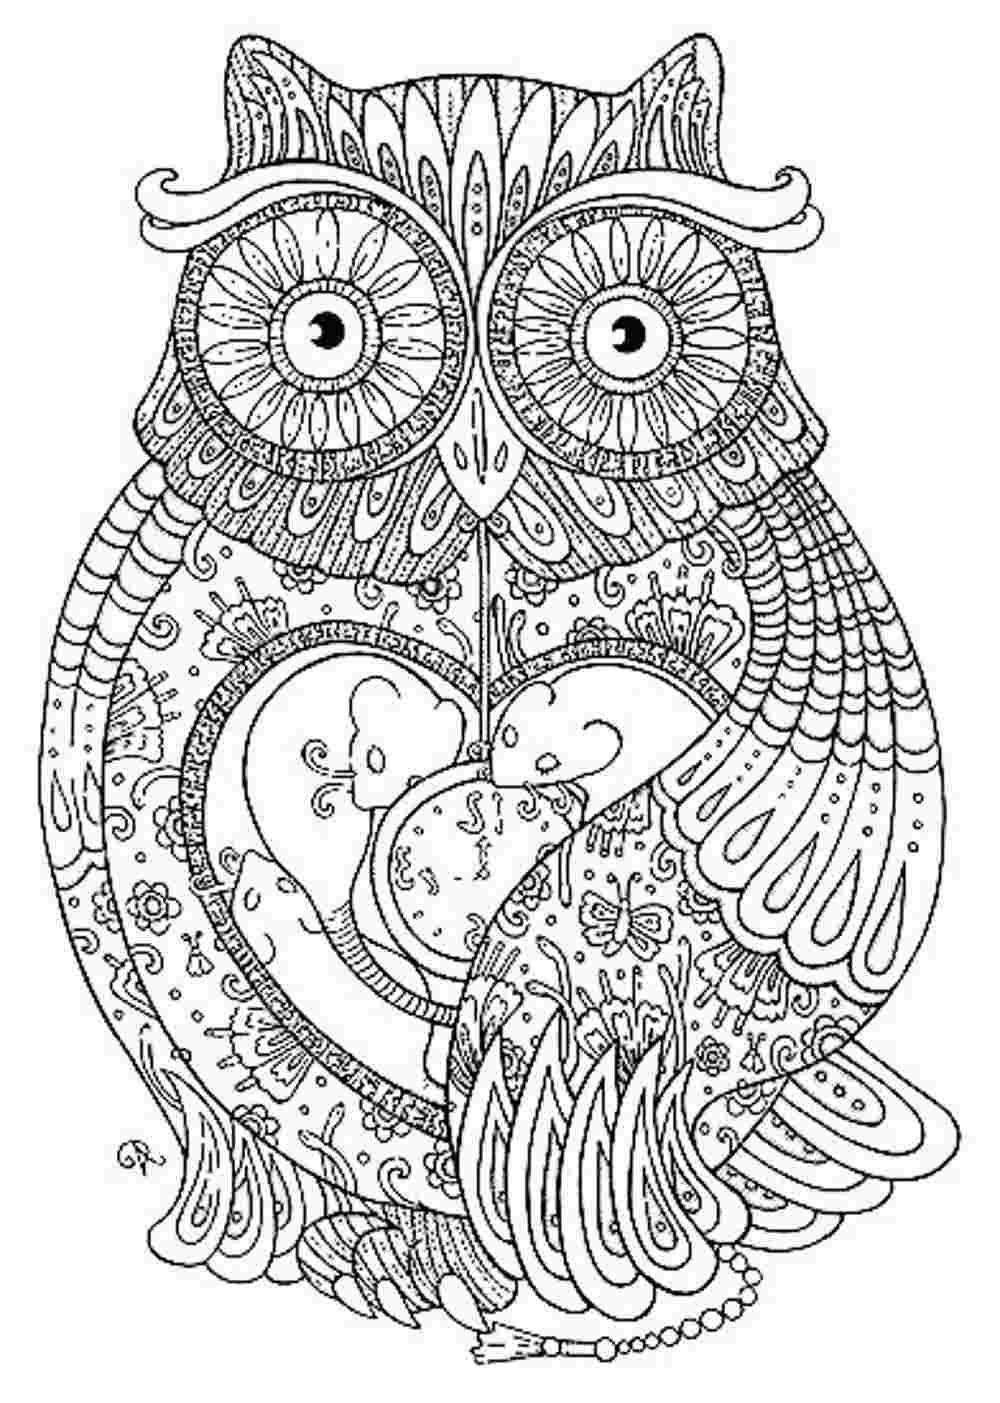 Adult coloring pages free printables mandala - Animal Mandala Coloring Pages To Download And Print For Free